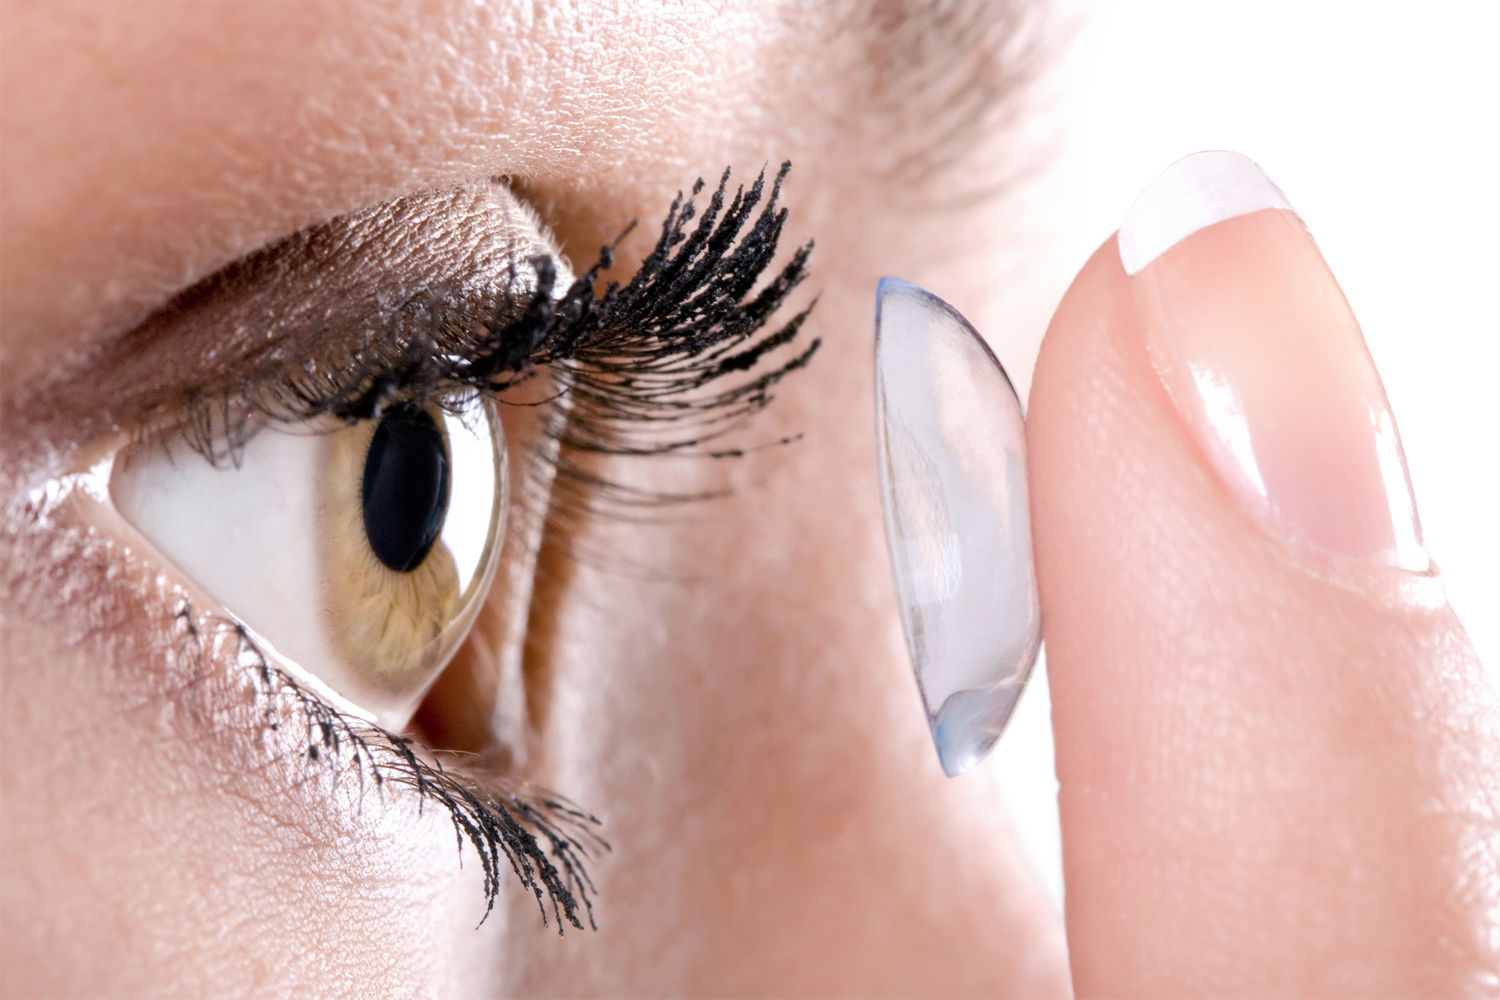 Five Reasons Why I Should Probably Get Contact Lenses